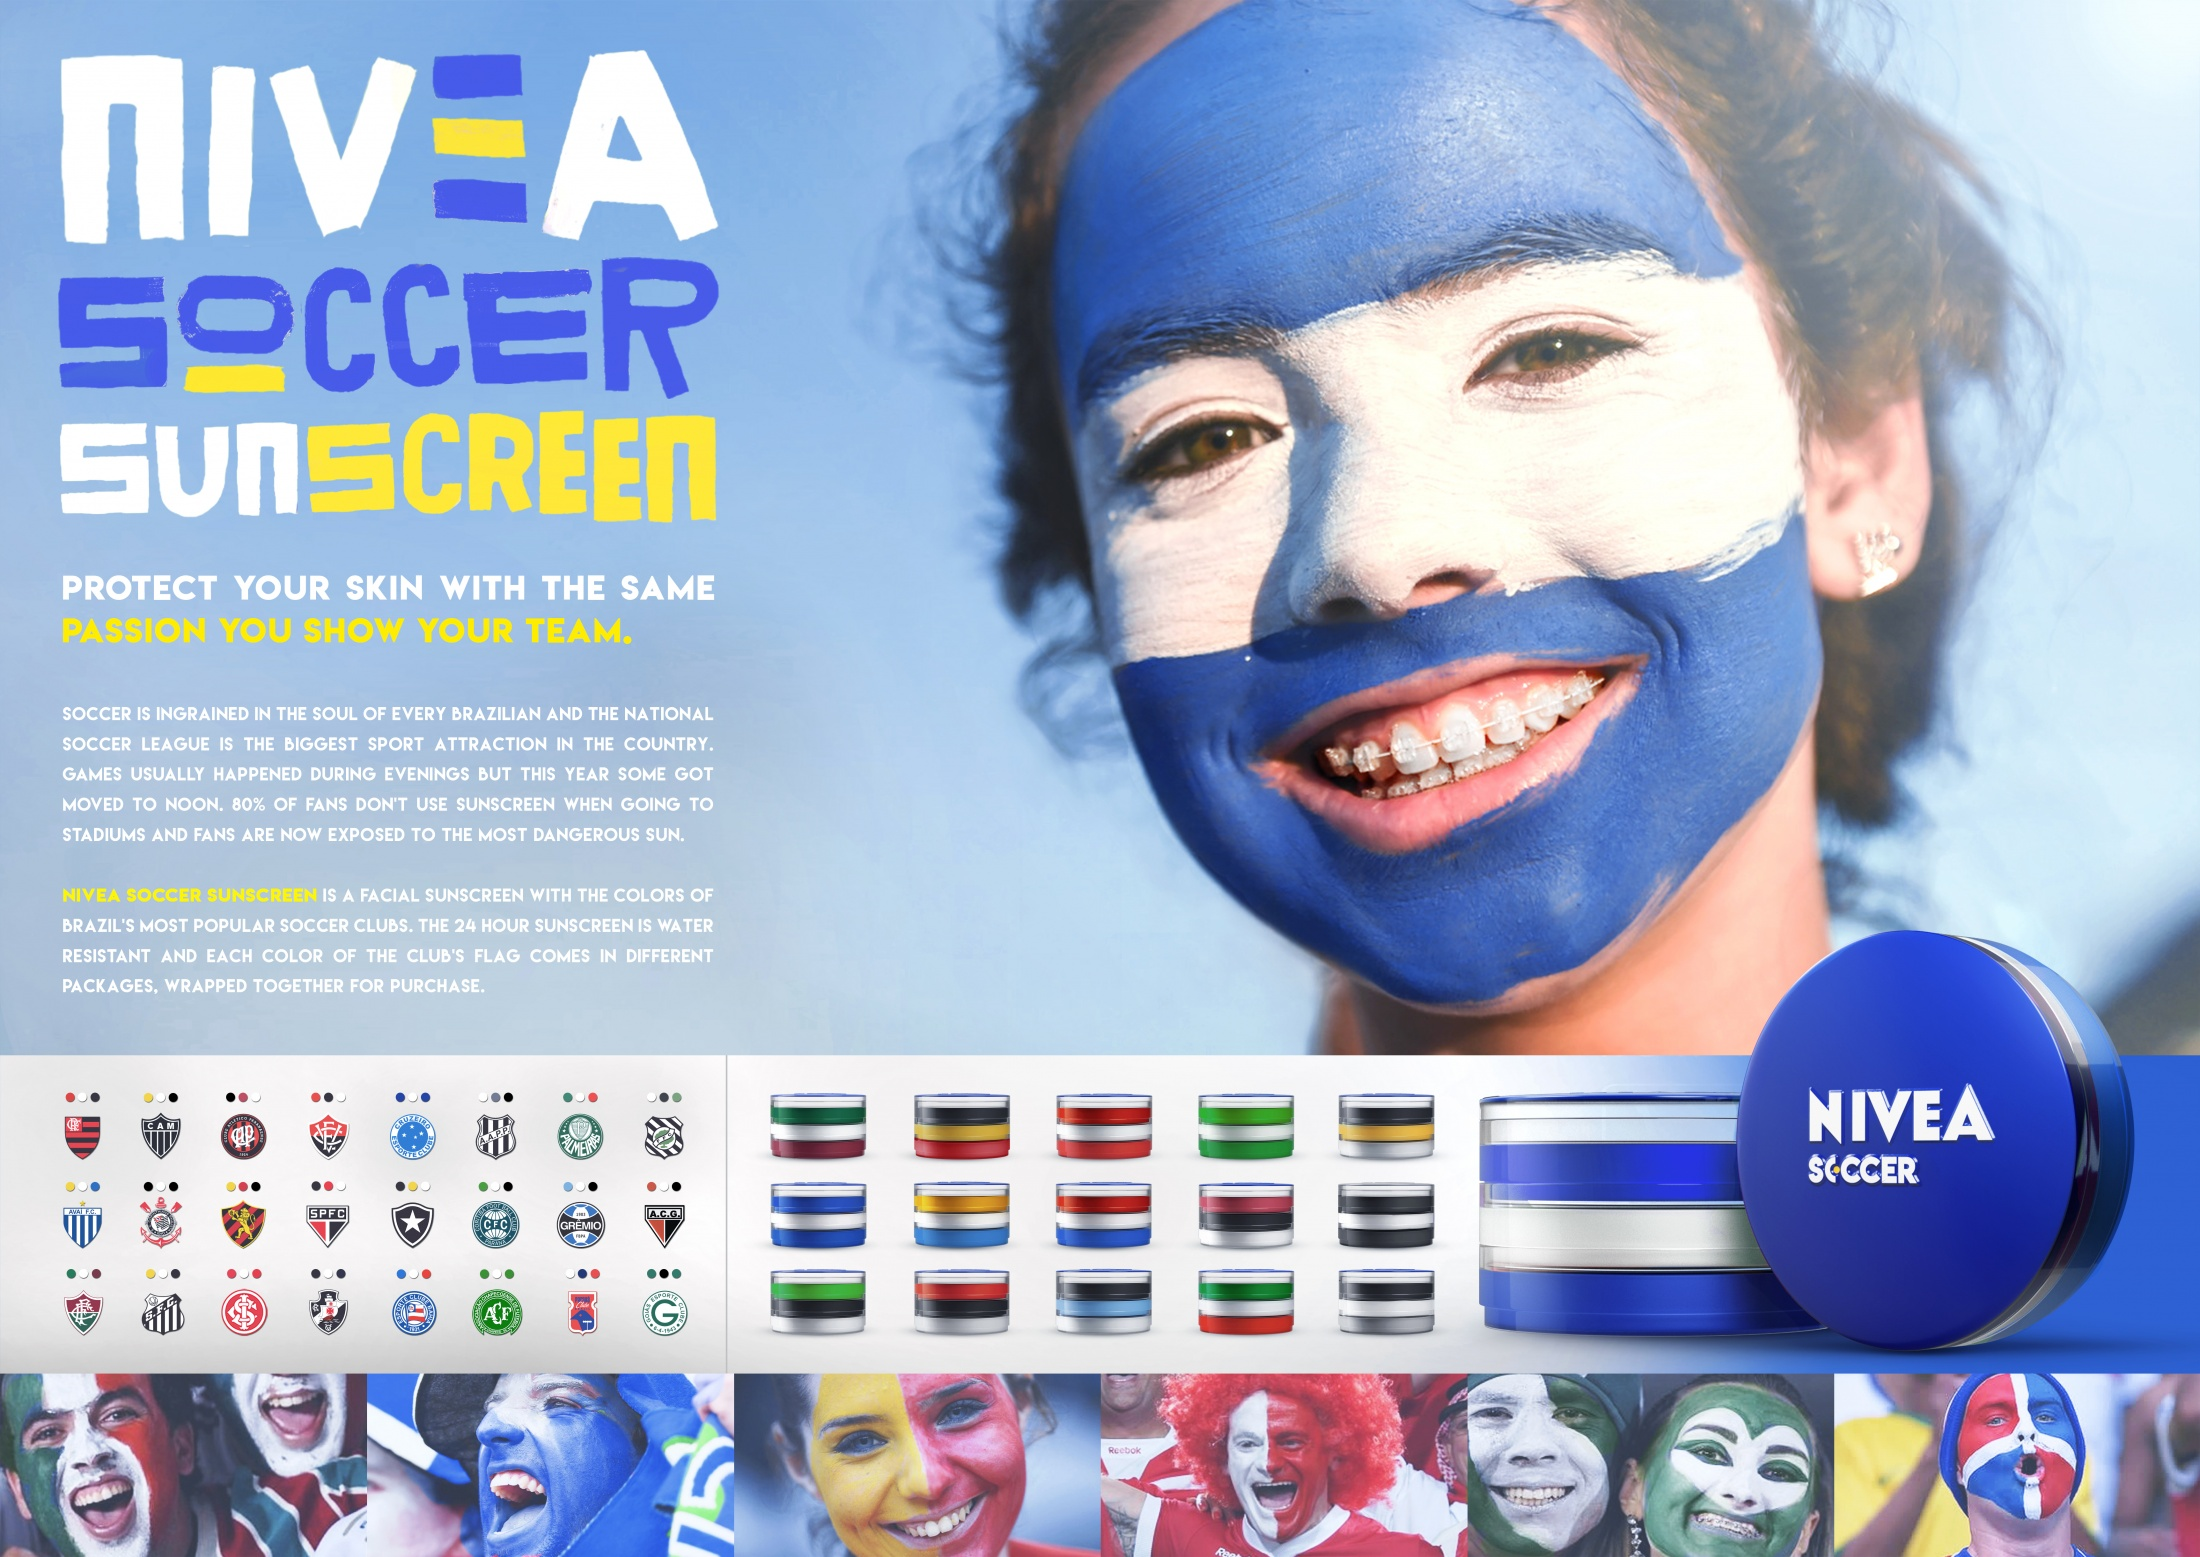 Image Media for Nivea Soccer Sunscreen